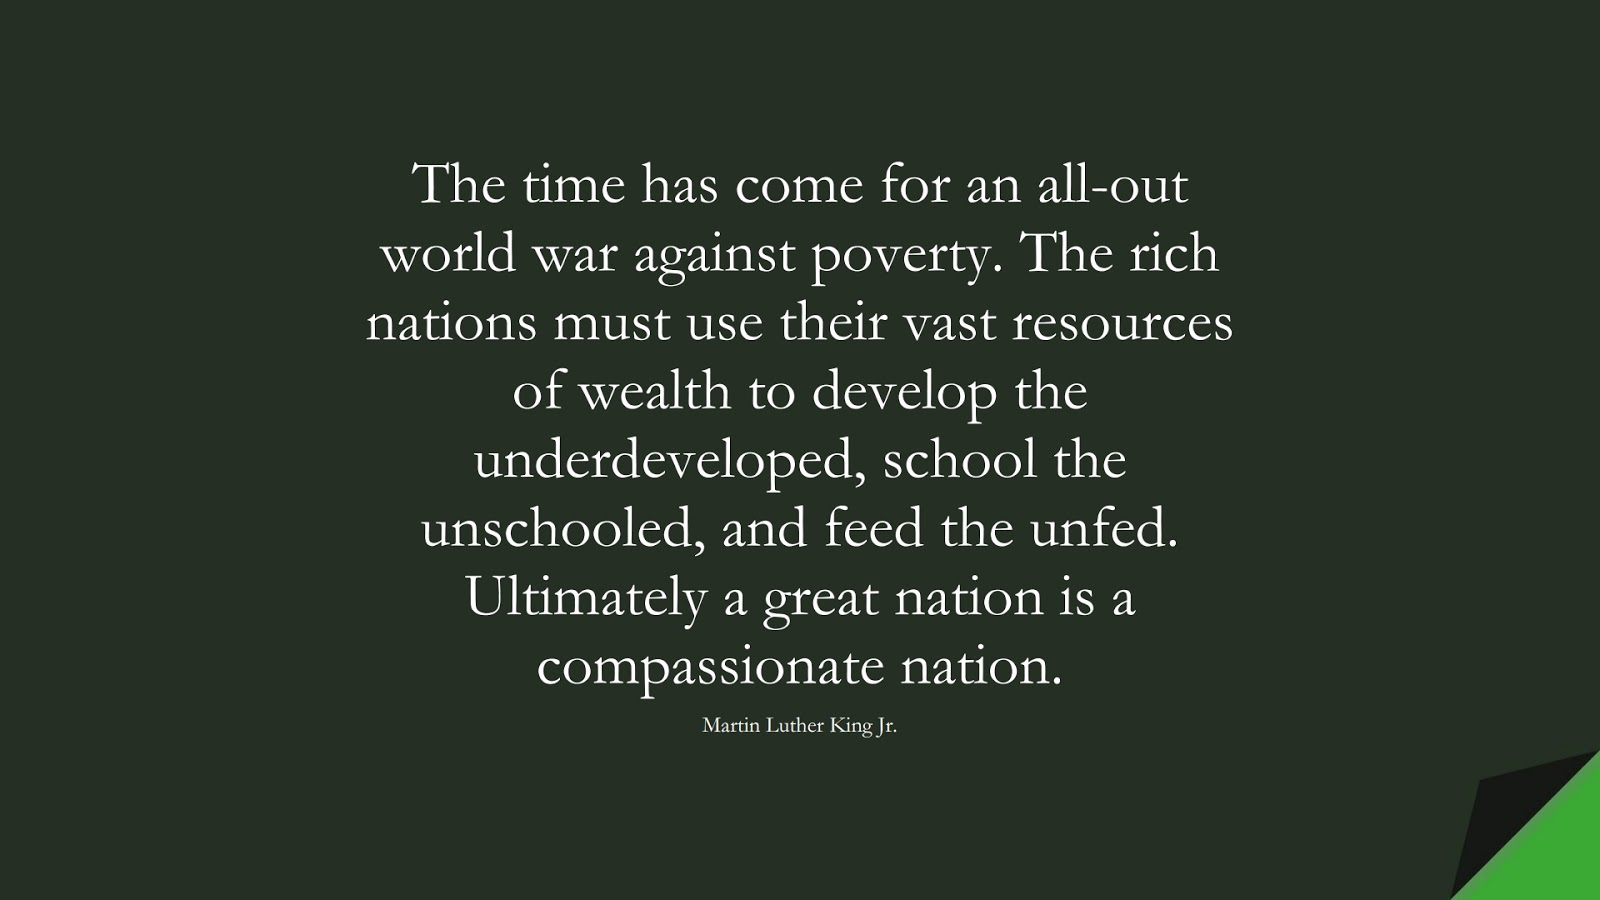 The time has come for an all-out world war against poverty. The rich nations must use their vast resources of wealth to develop the underdeveloped, school the unschooled, and feed the unfed. Ultimately a great nation is a compassionate nation. (Martin Luther King Jr.);  #MartinLutherKingJrQuotes